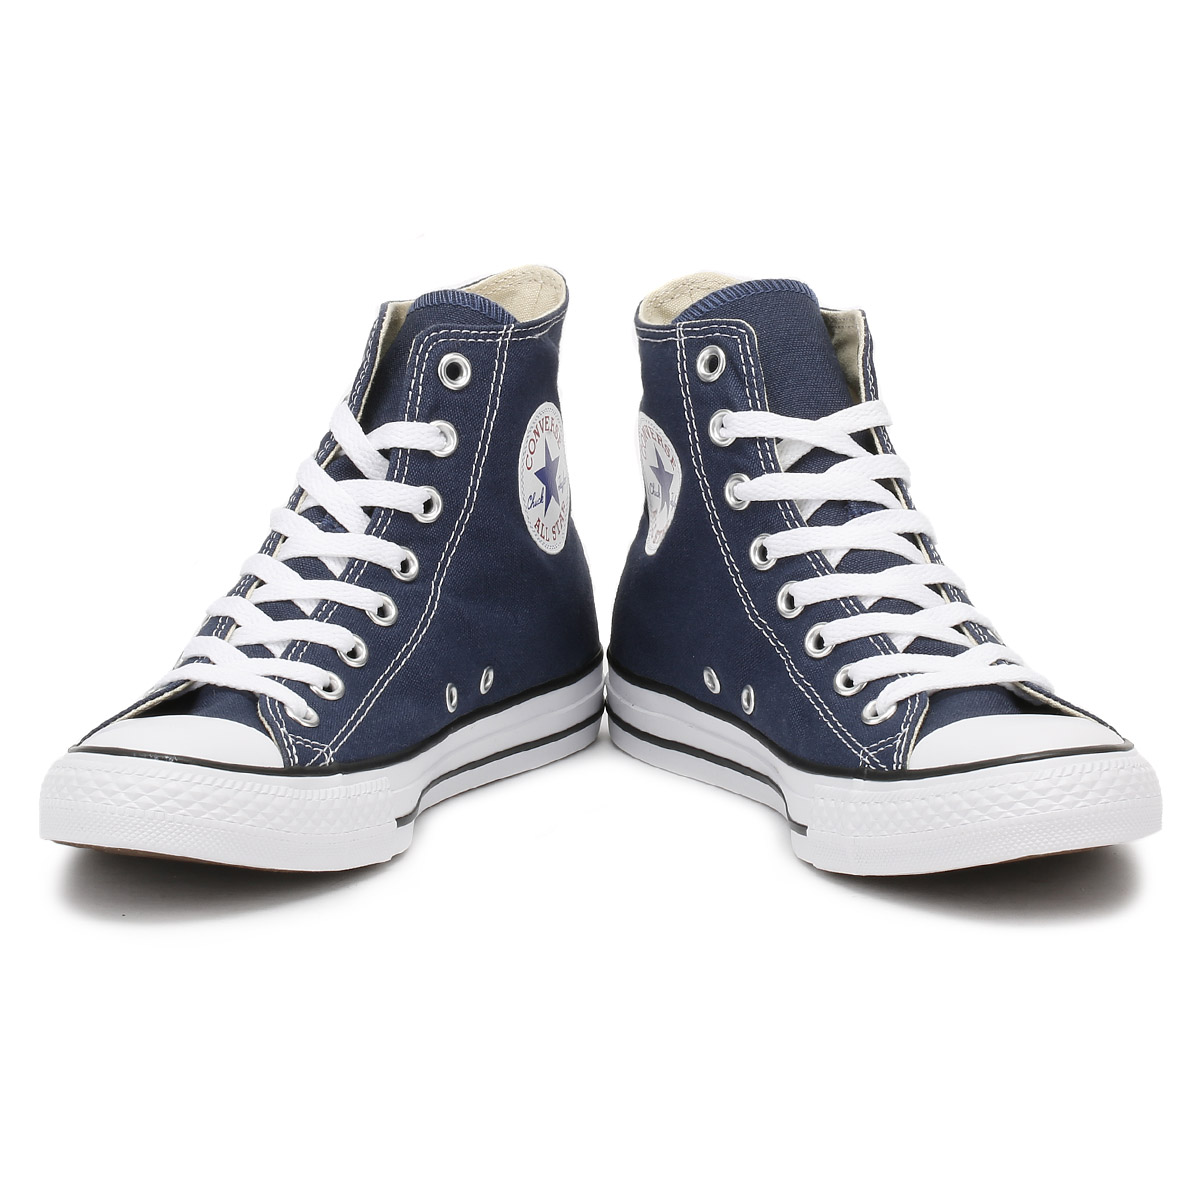 9dfa4dc2cfa2 Converse Mens Womens Trainers Navy Blue All Star Hi Tops Unisex Canvas  Sneakers